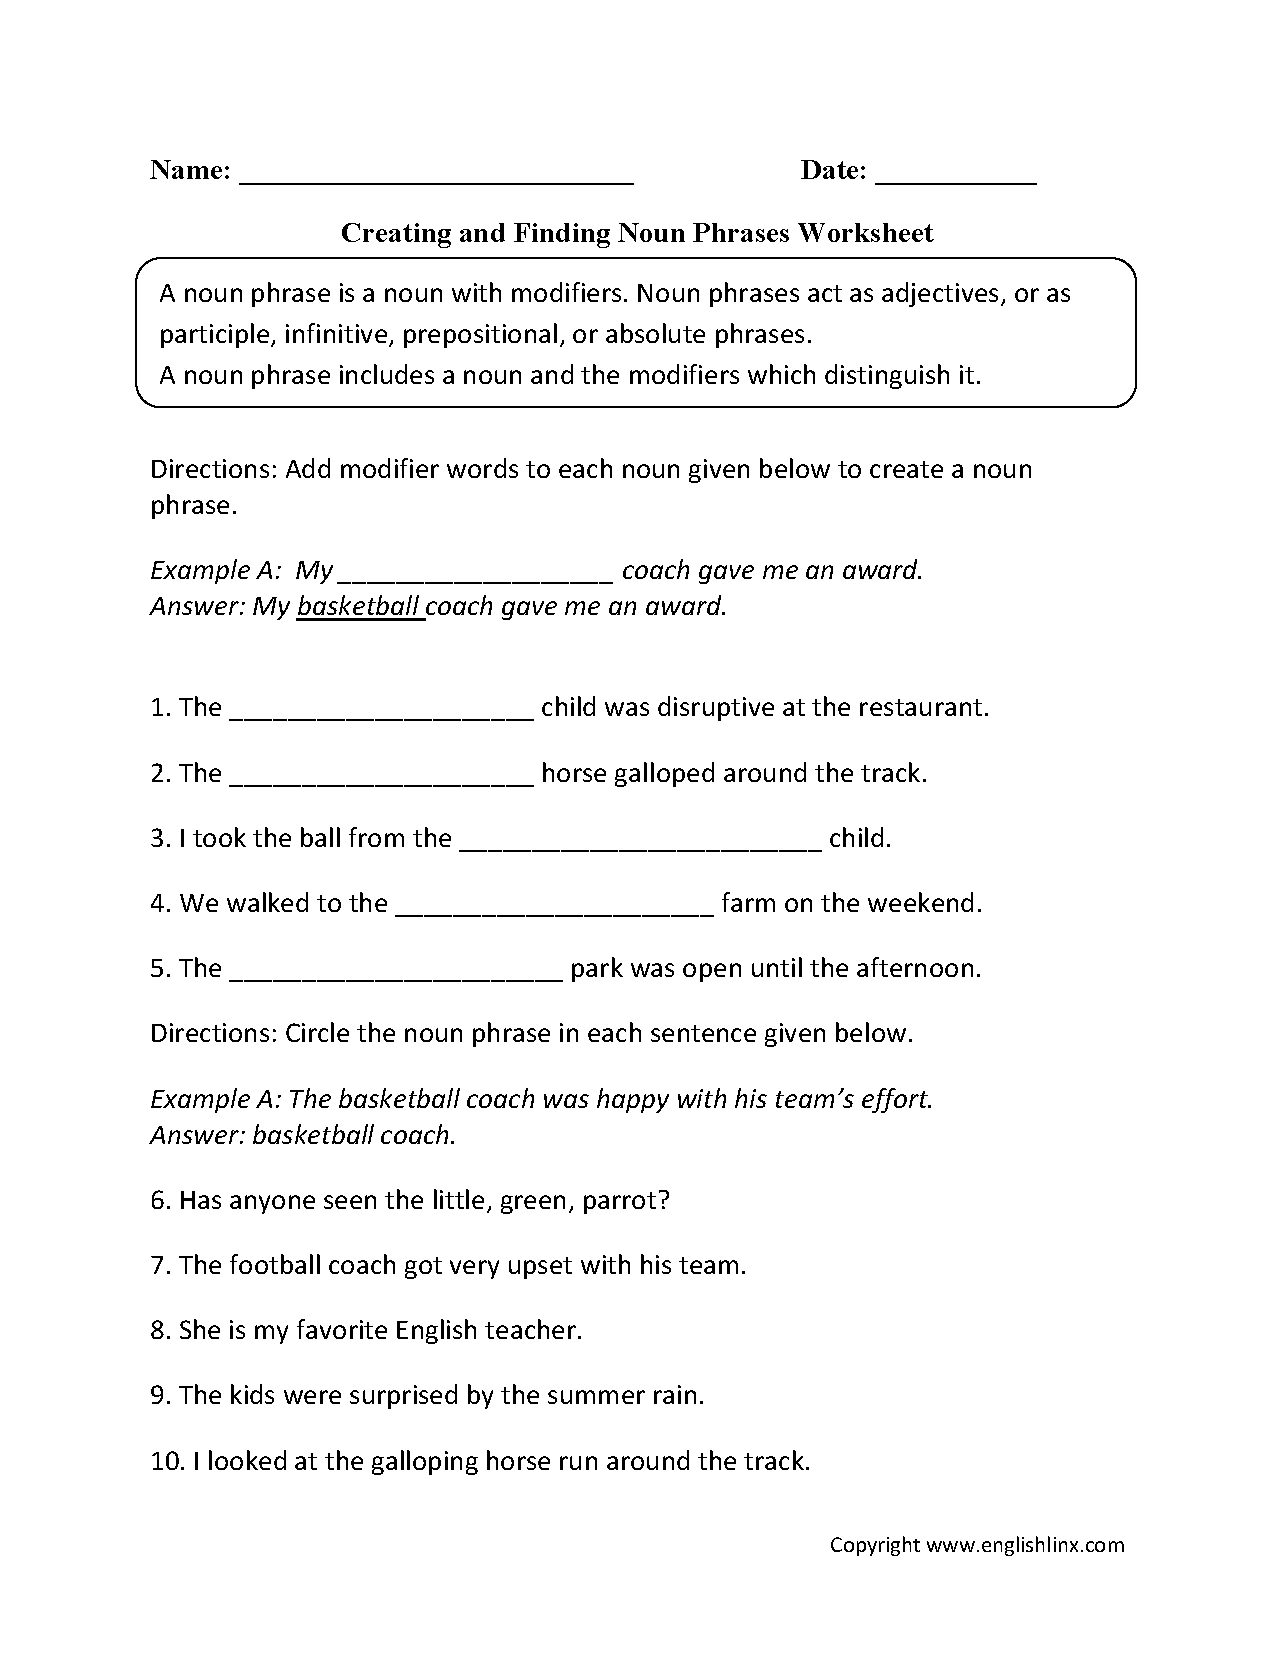 Creating and Finding Noun Phrases Worksheets   Nouns worksheet [ 1662 x 1275 Pixel ]